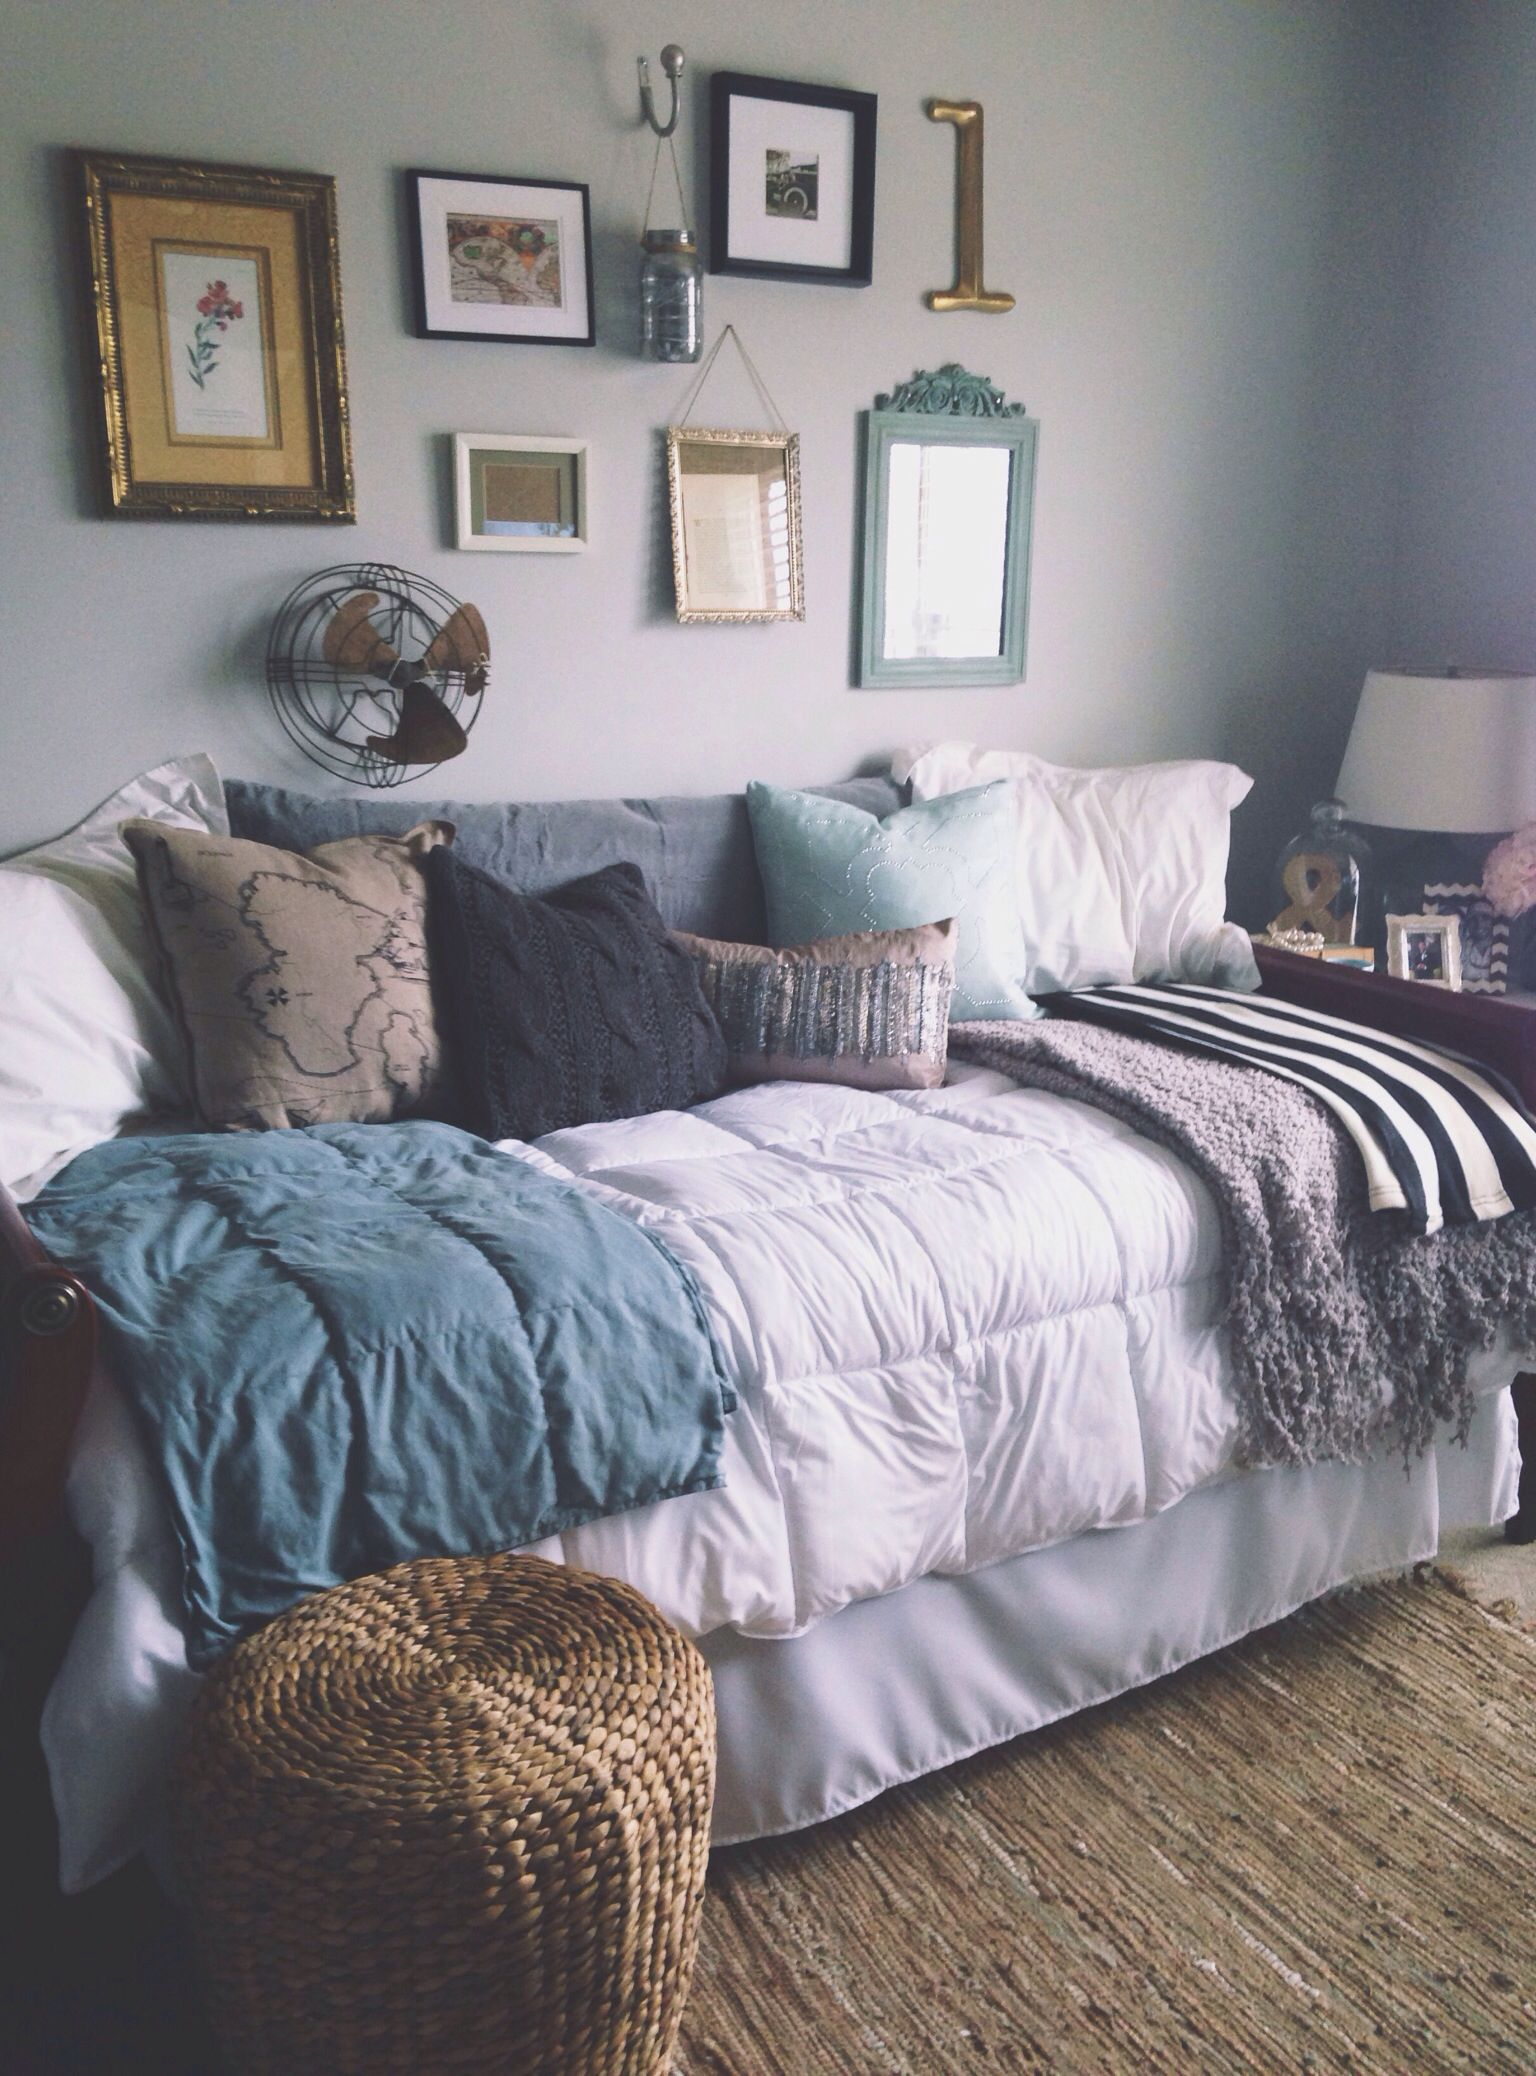 Pictures Of Cozy Bedrooms I Love These Colors For Bedroom It 39s Cozy Grown Up